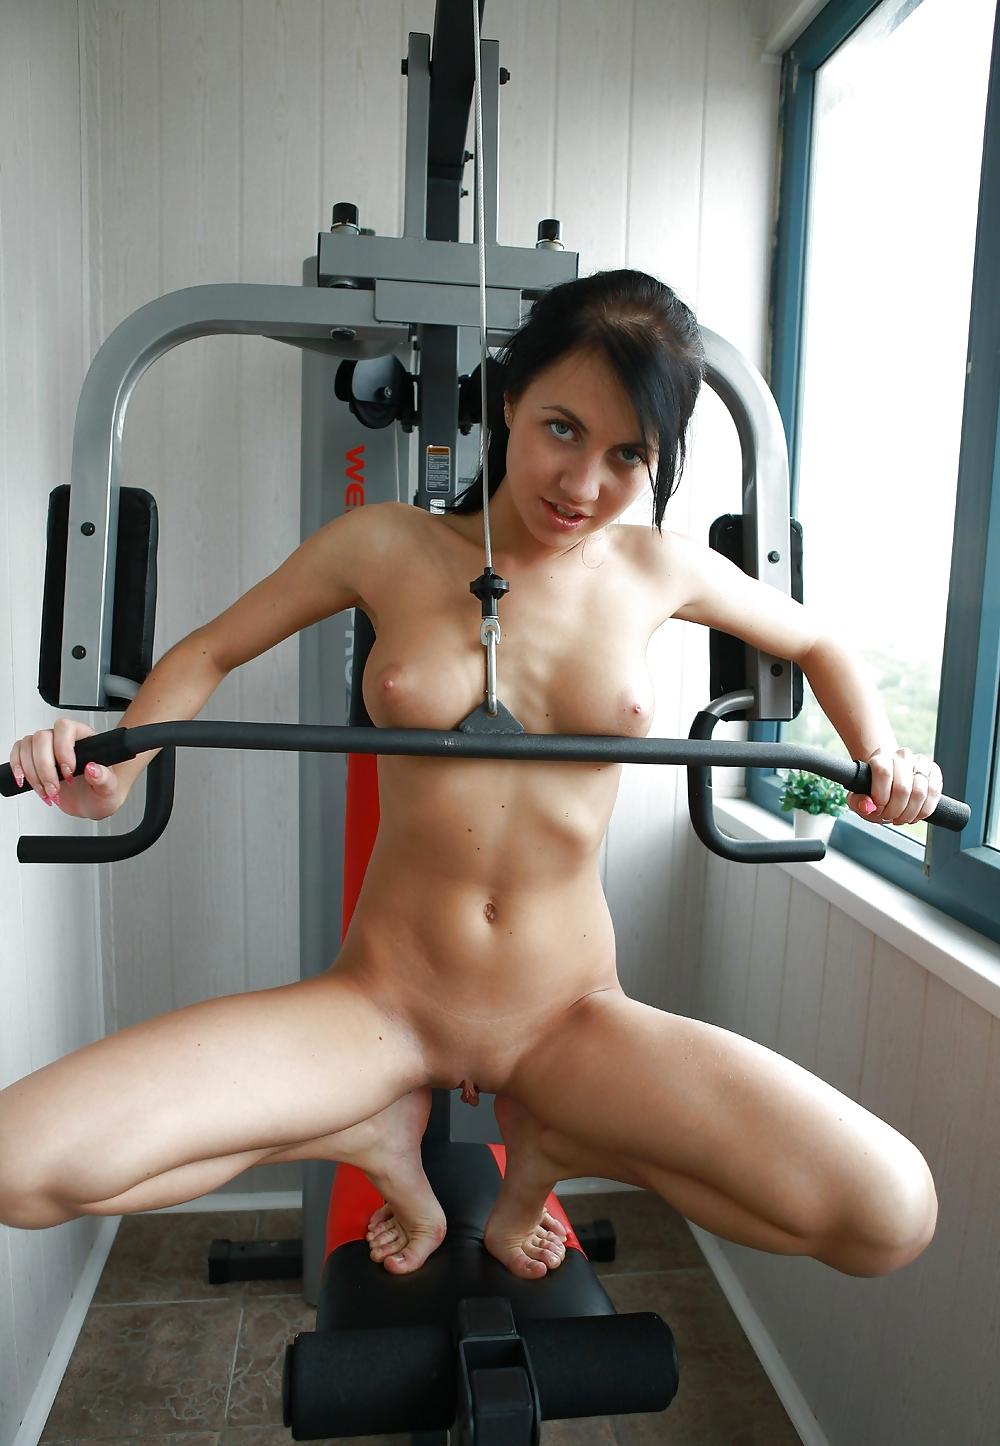 Hot Naked Girls Working Out Gym